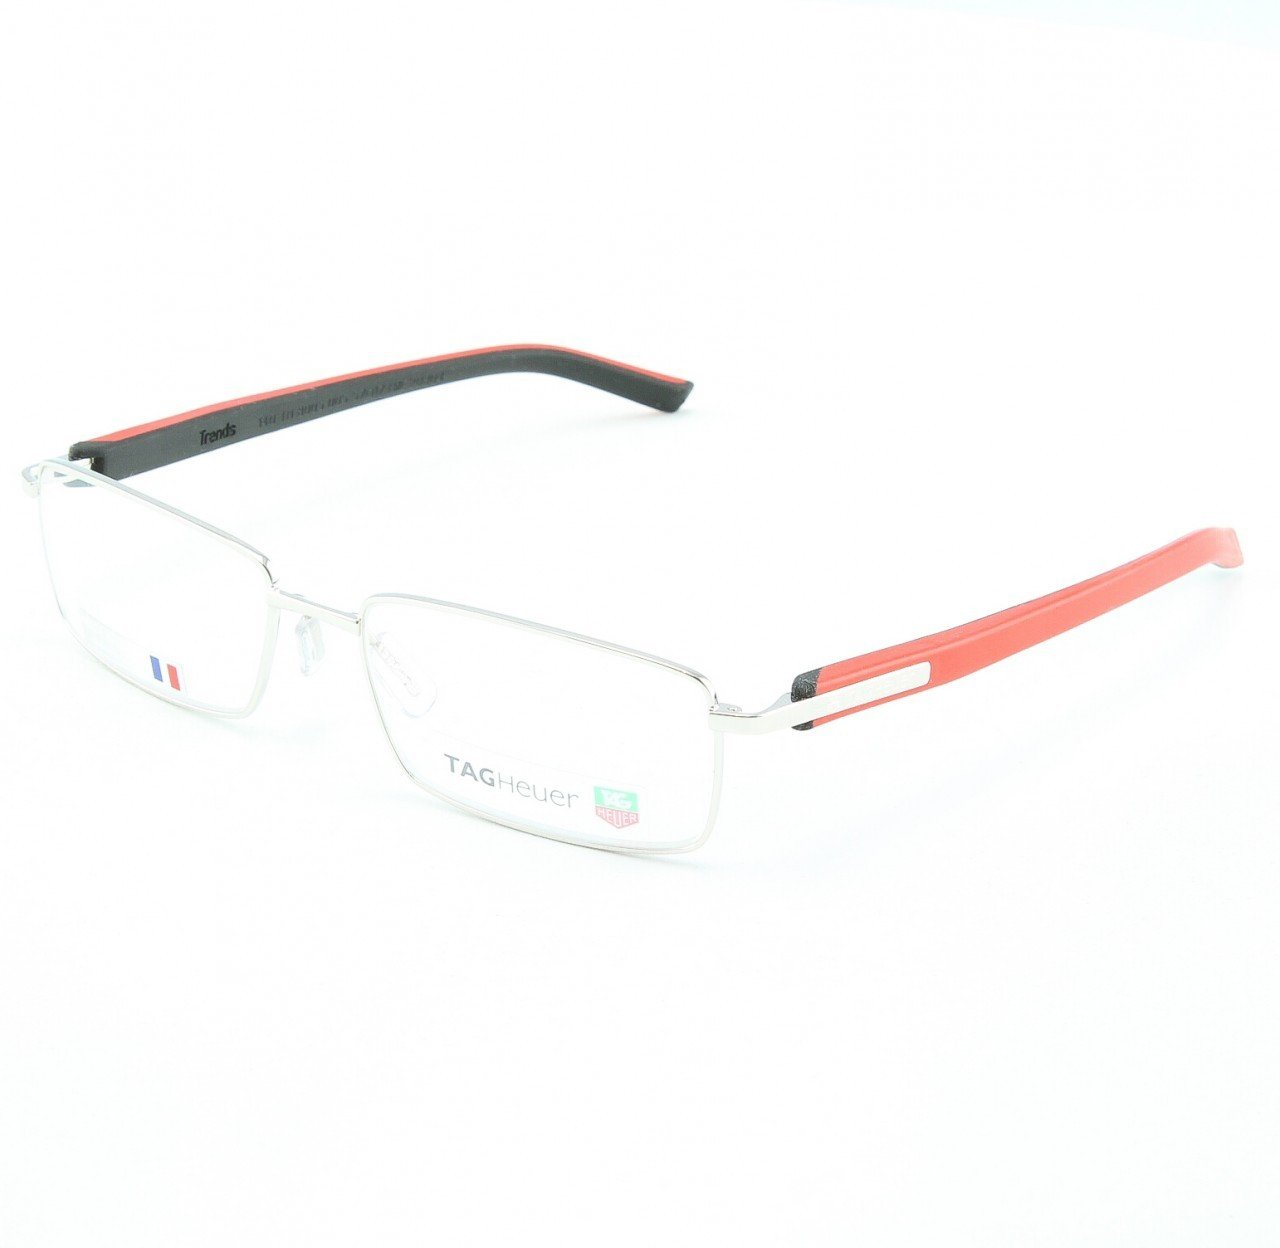 TAG Heuer 8005 Men's Eyeglasses Col. 005 Brushed Black Red with Clear Lenses